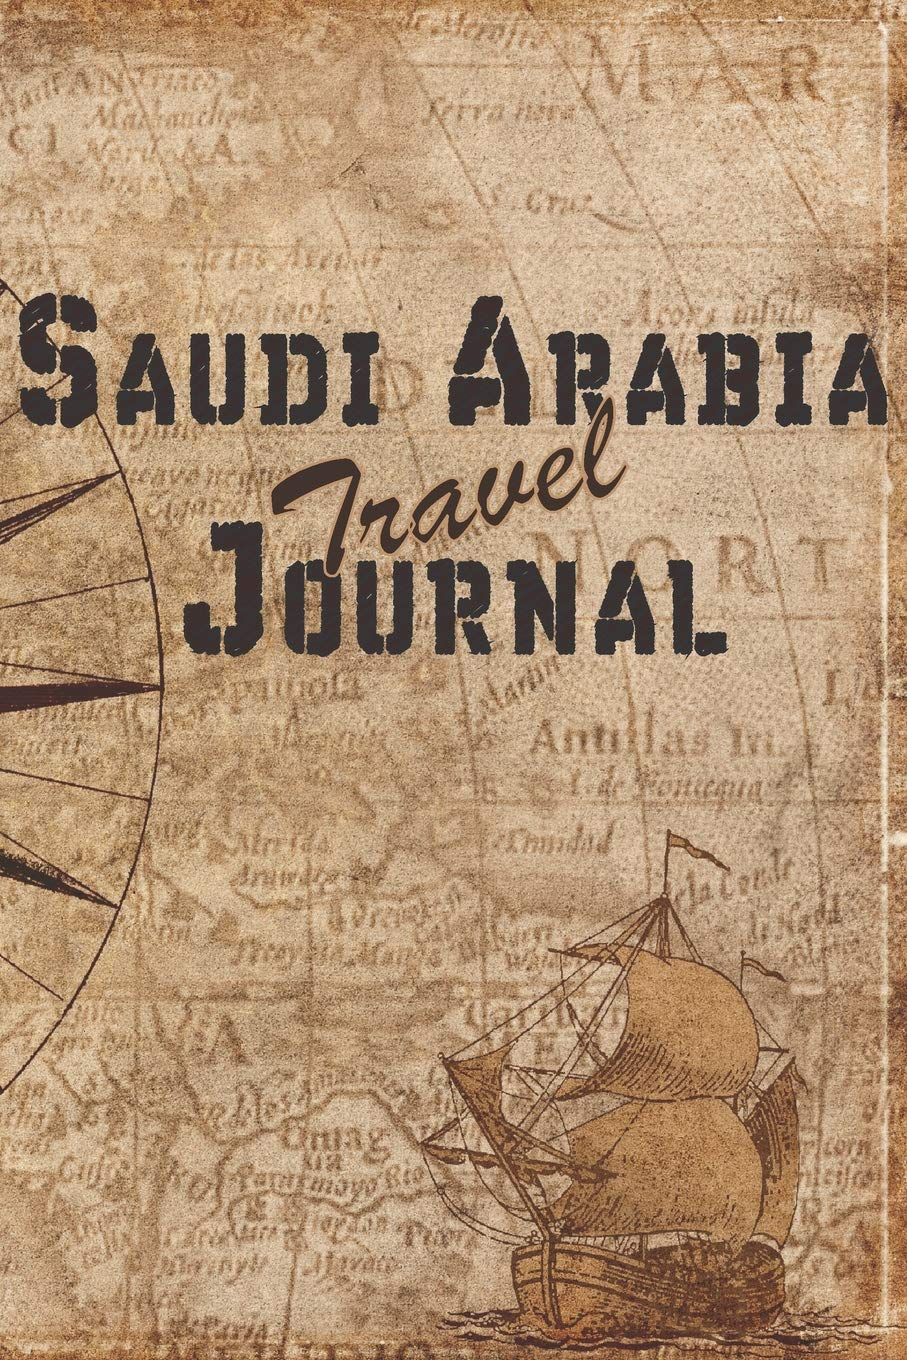 Saudi Arabia Travel Journal: 6x9 Travel Notebook with